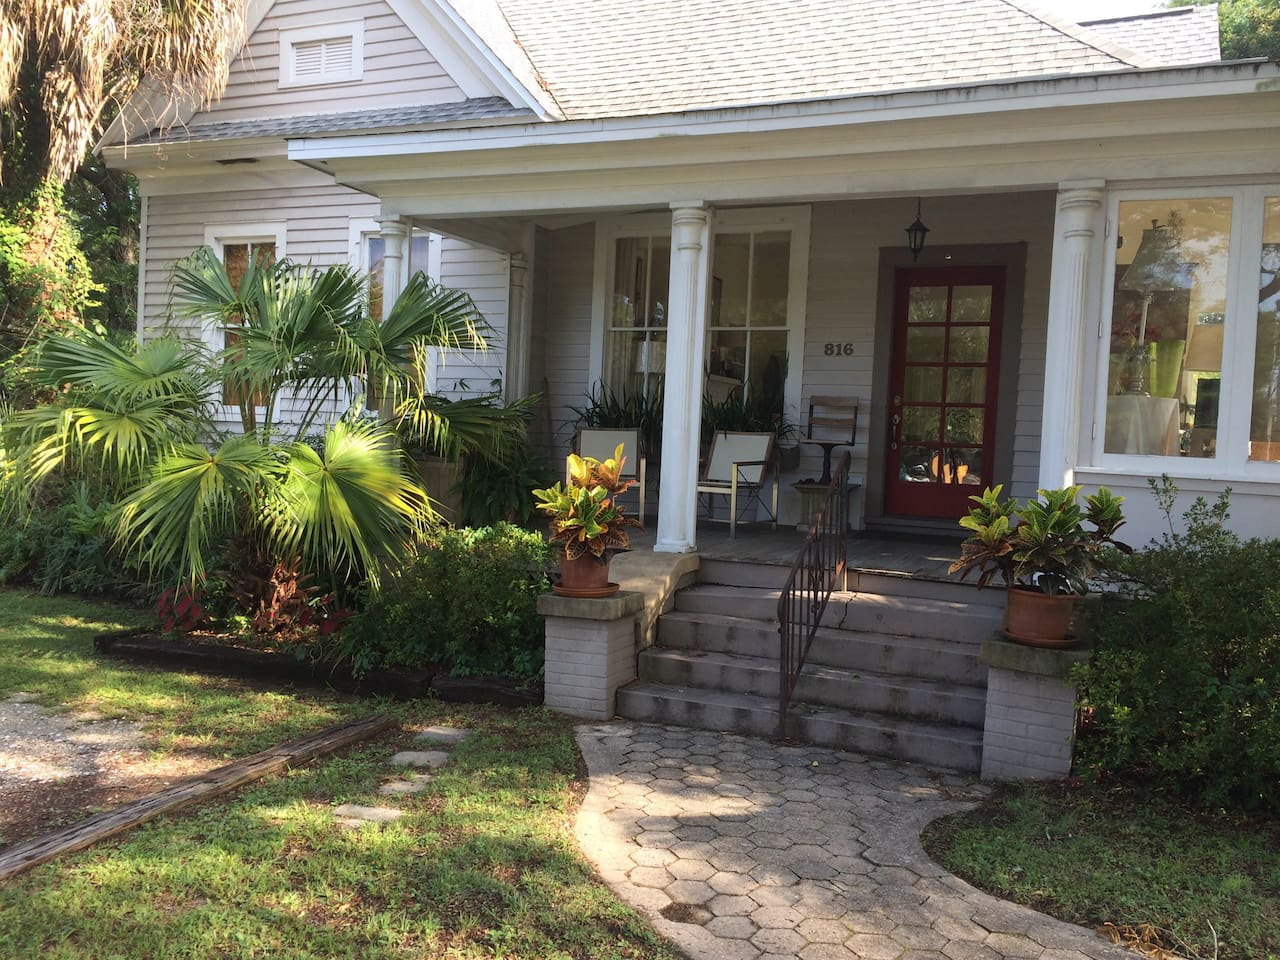 Charming late Victorian in historic district 10 minutes from the airport and downtown, 20 minutes to beaches